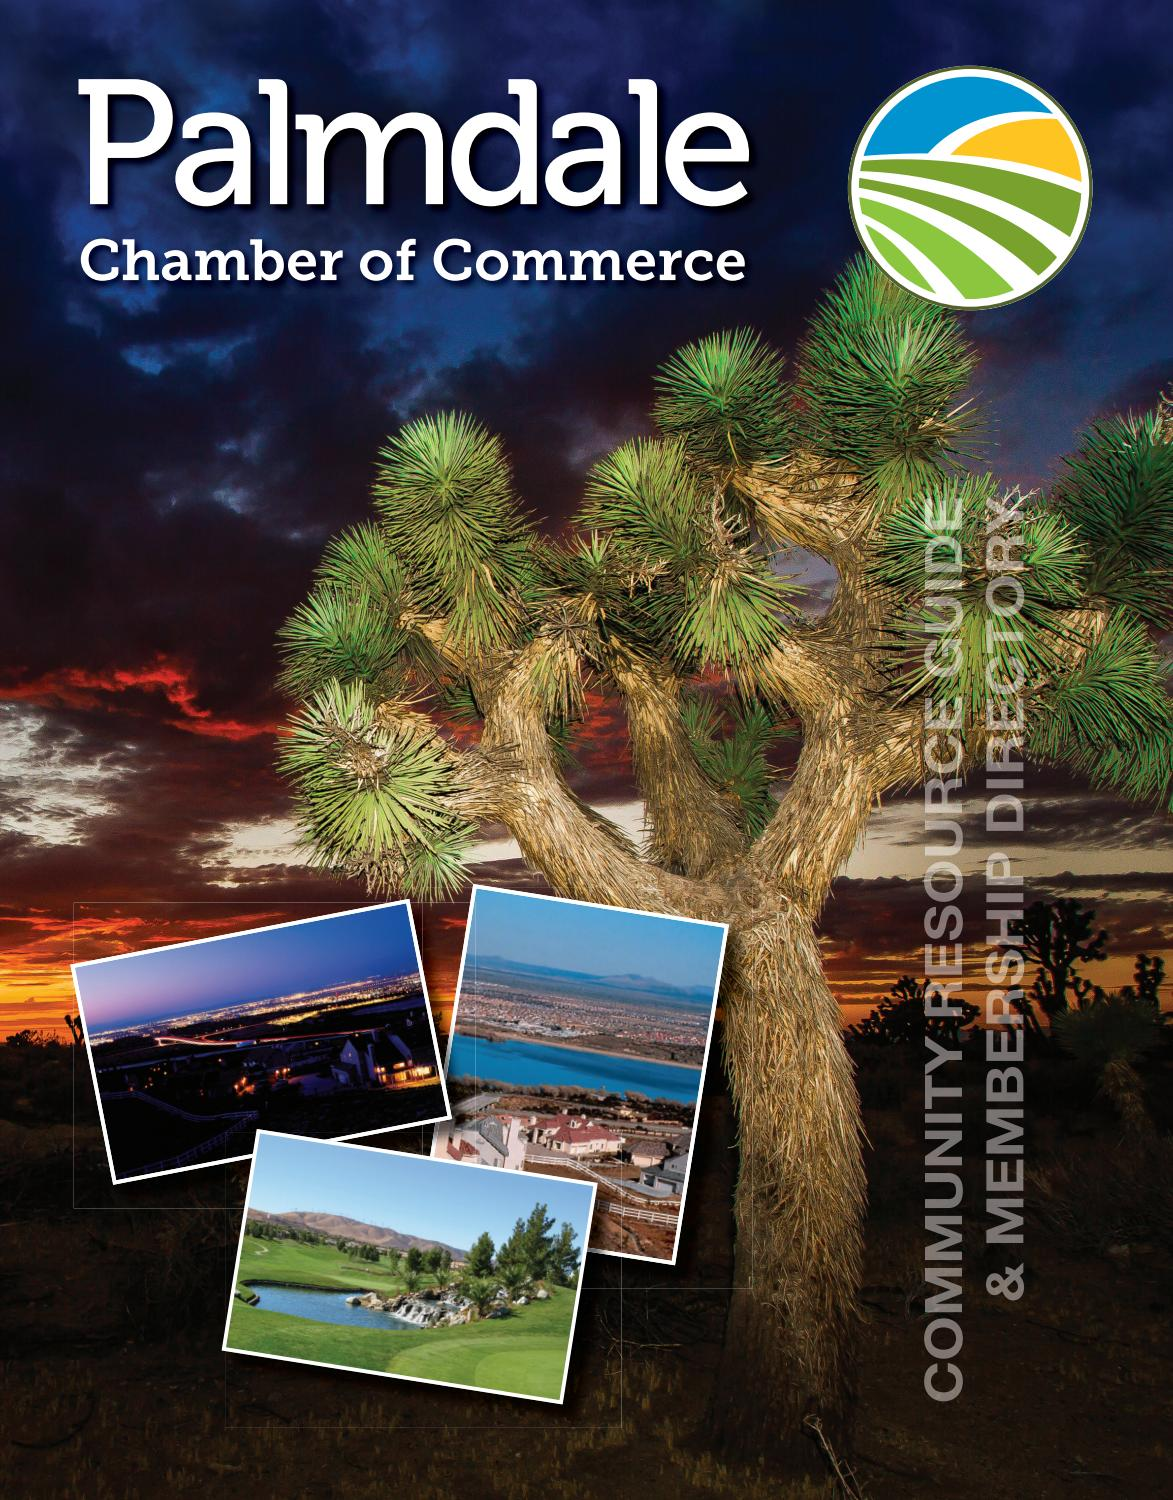 Palmdale Ca 2018 Community Profile By Town Square Publications